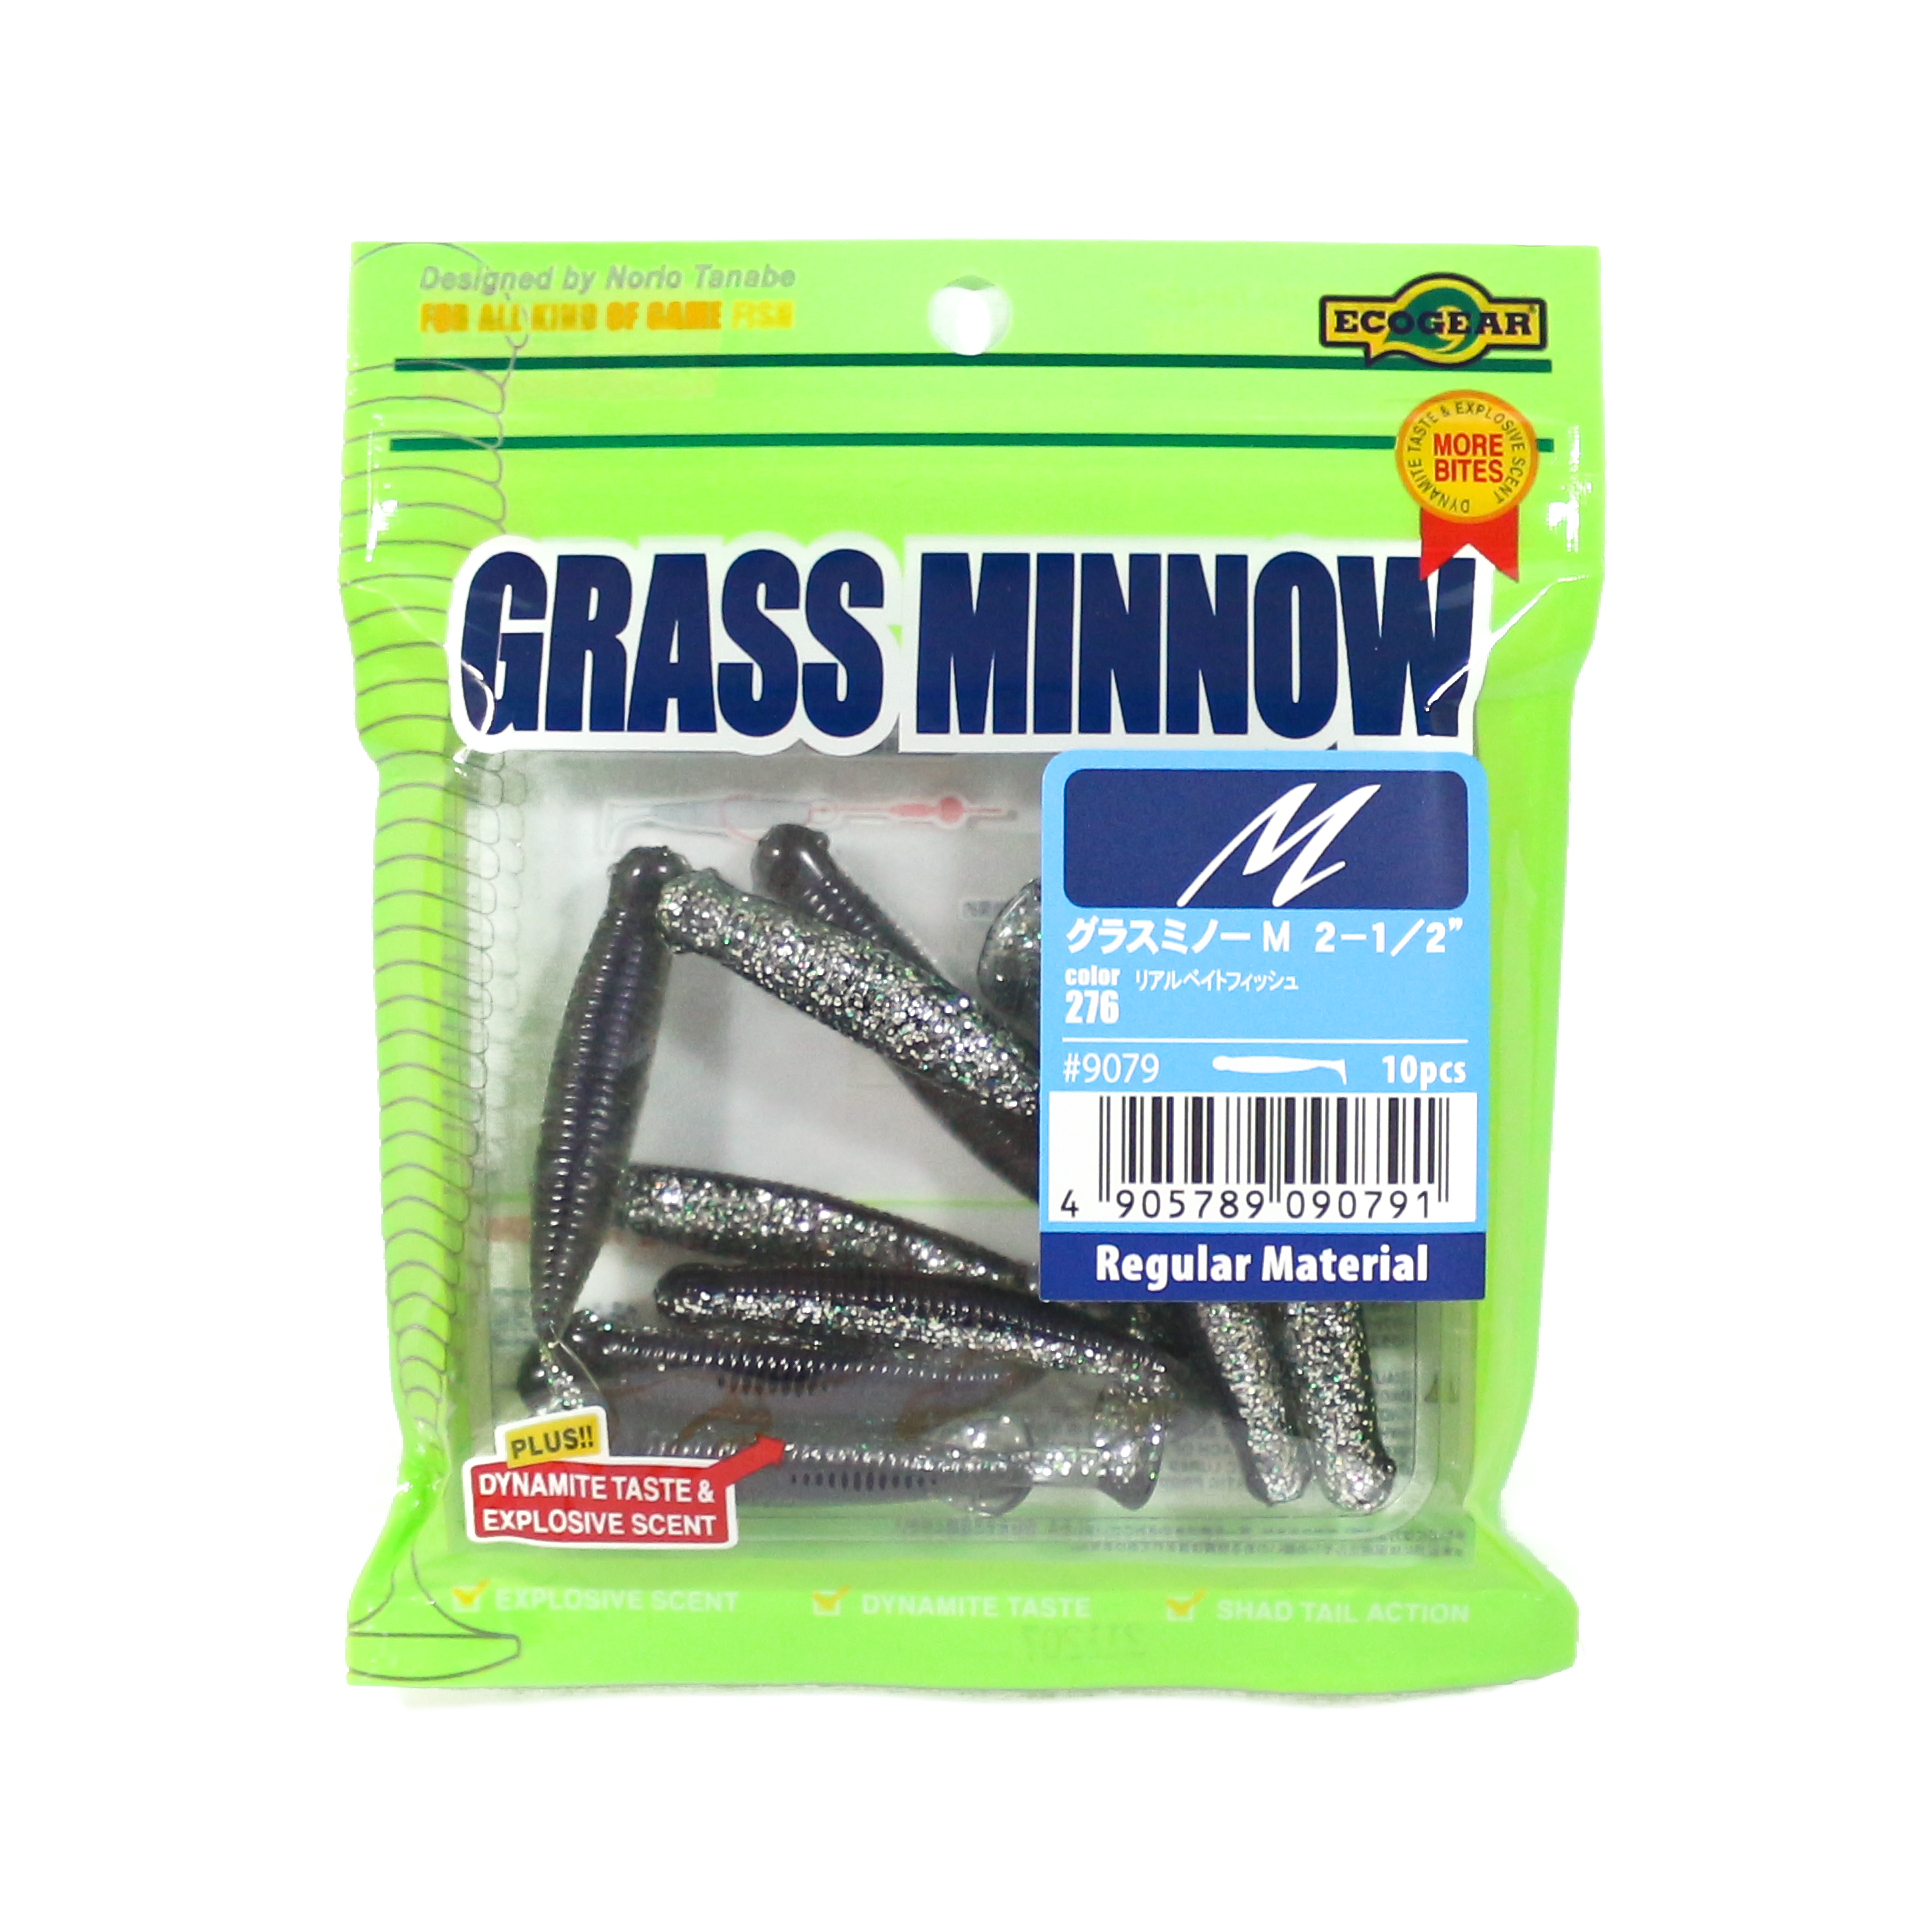 Ecogear Soft Lure Grass Minnow M 2-1/2 Inch 10 piece per pack 276 (0791)